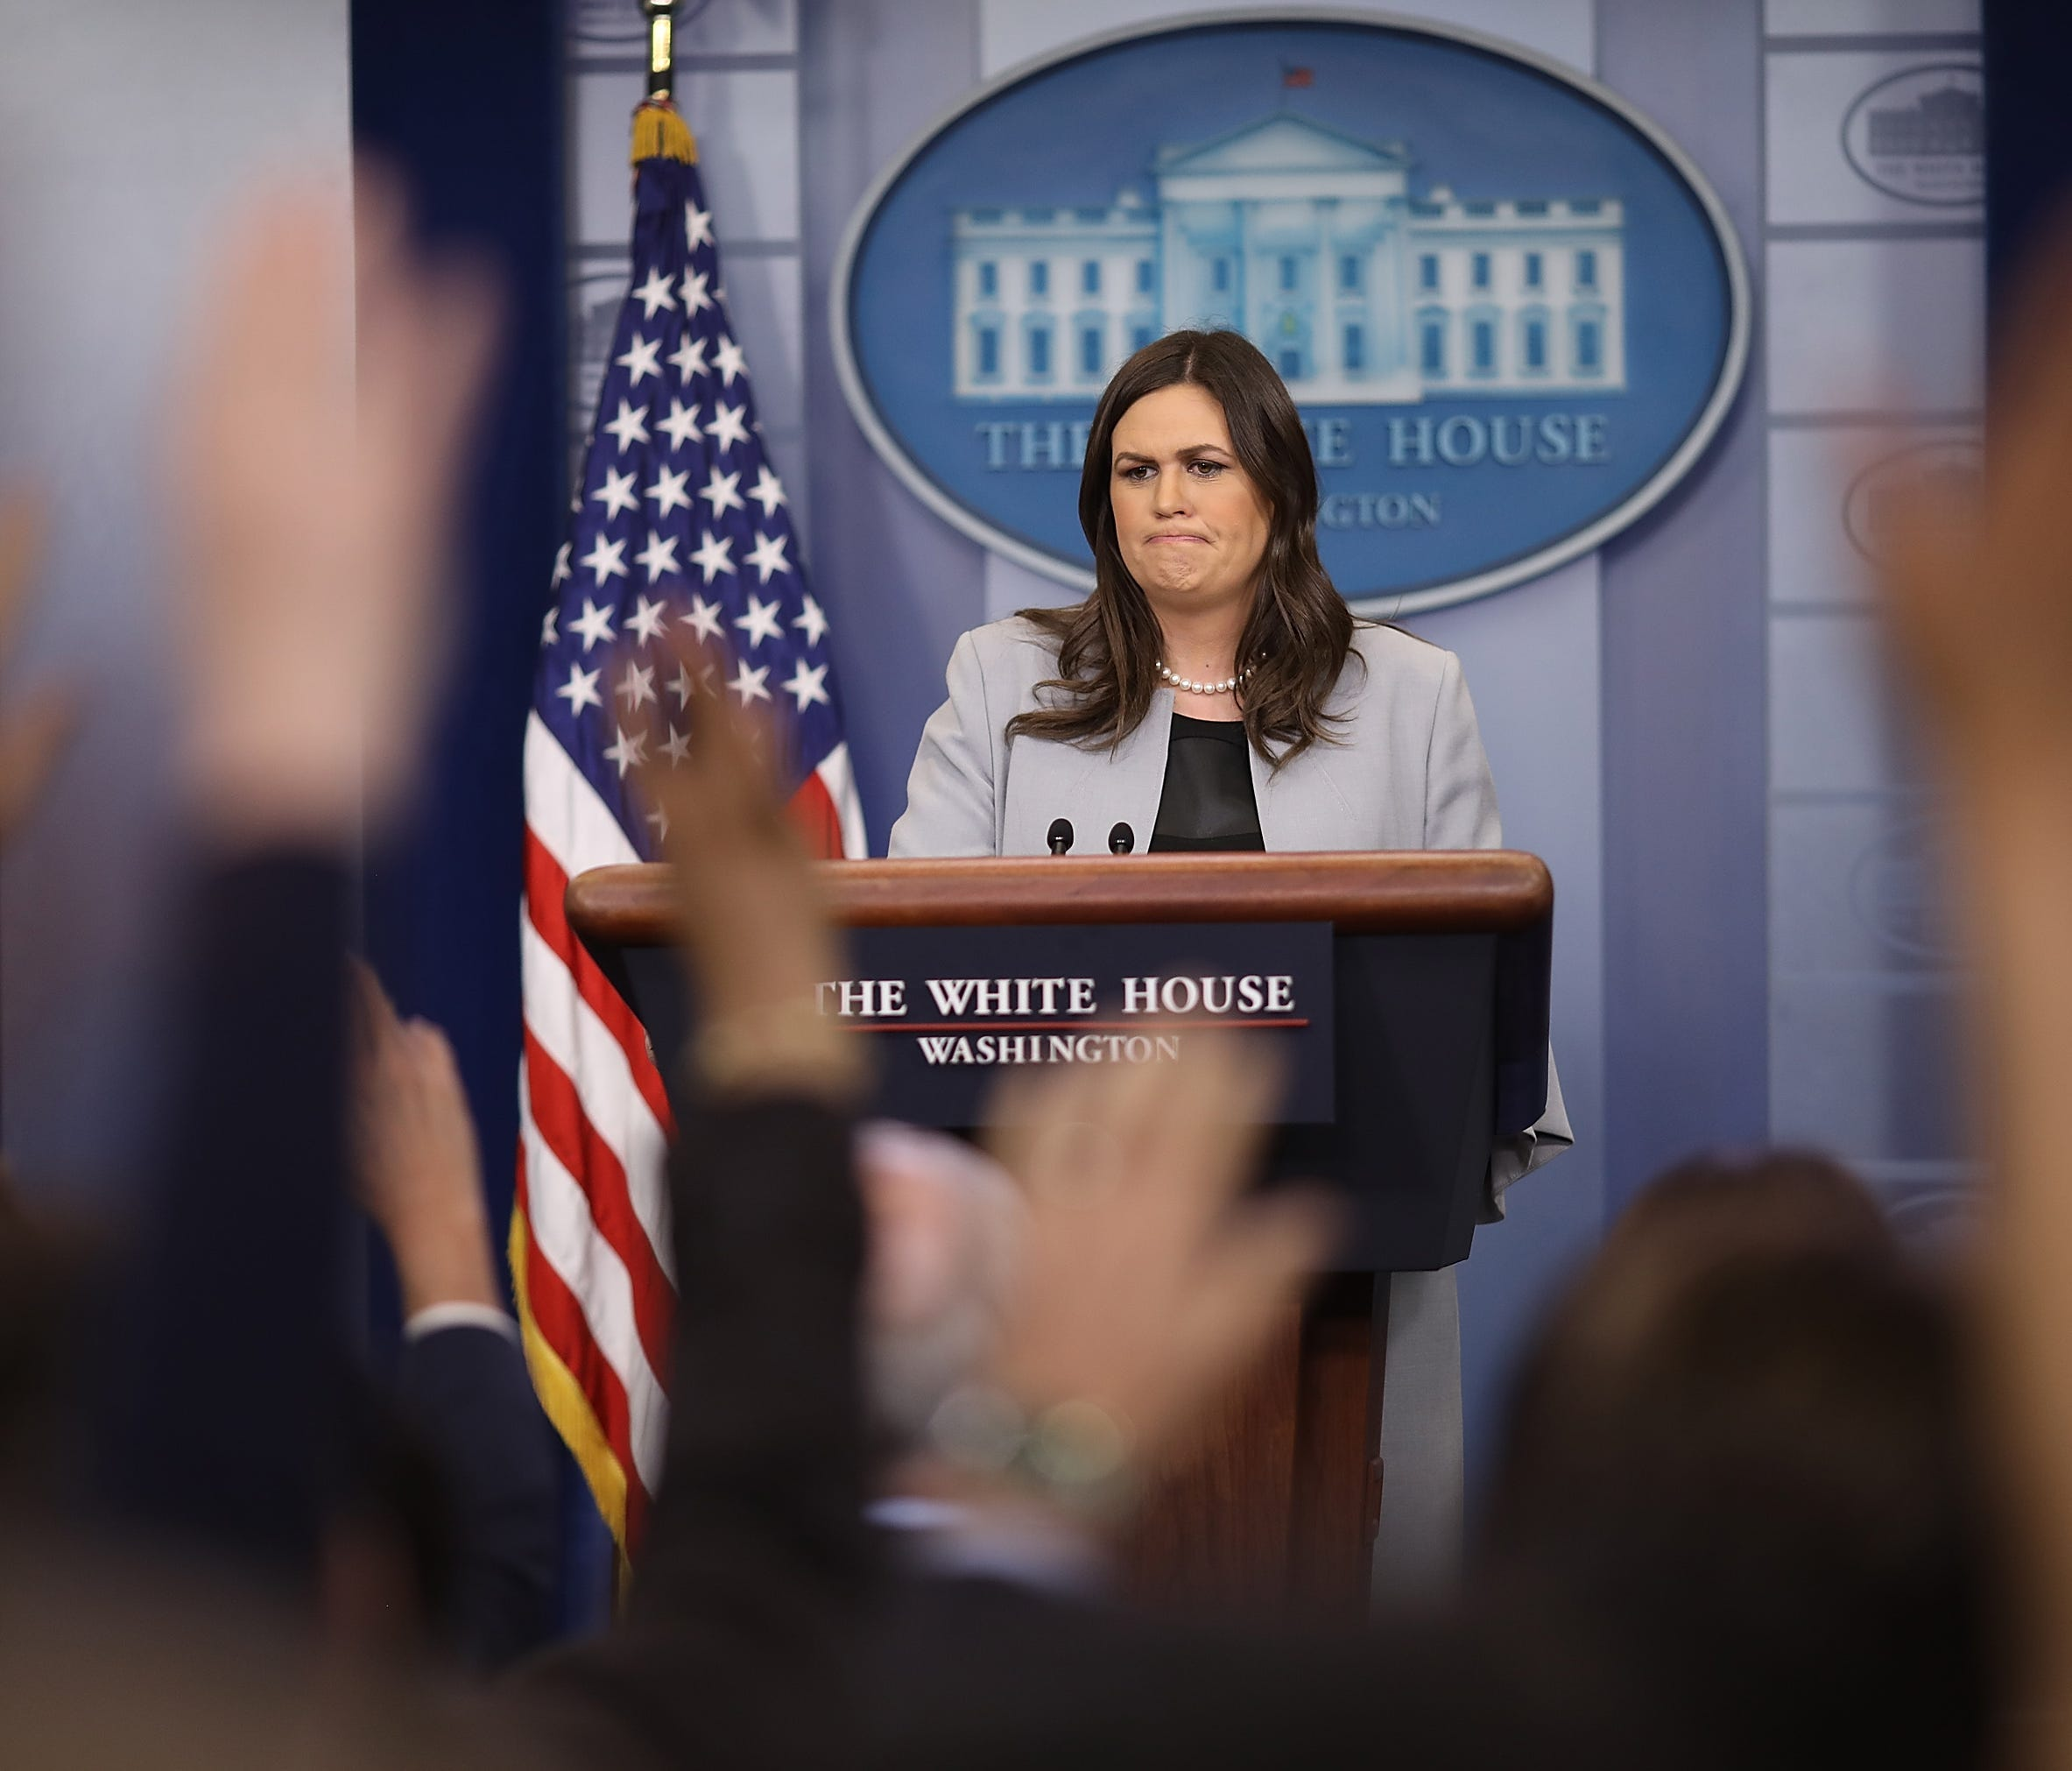 WASHINGTON, DC - MARCH 07:  White House Press Secretary Sarah Huckabee Sanders answers questions during a briefing at the White House on March 7, 2018 in Washington, DC. Sanders answered a range of questions related to recently announced trade tariff